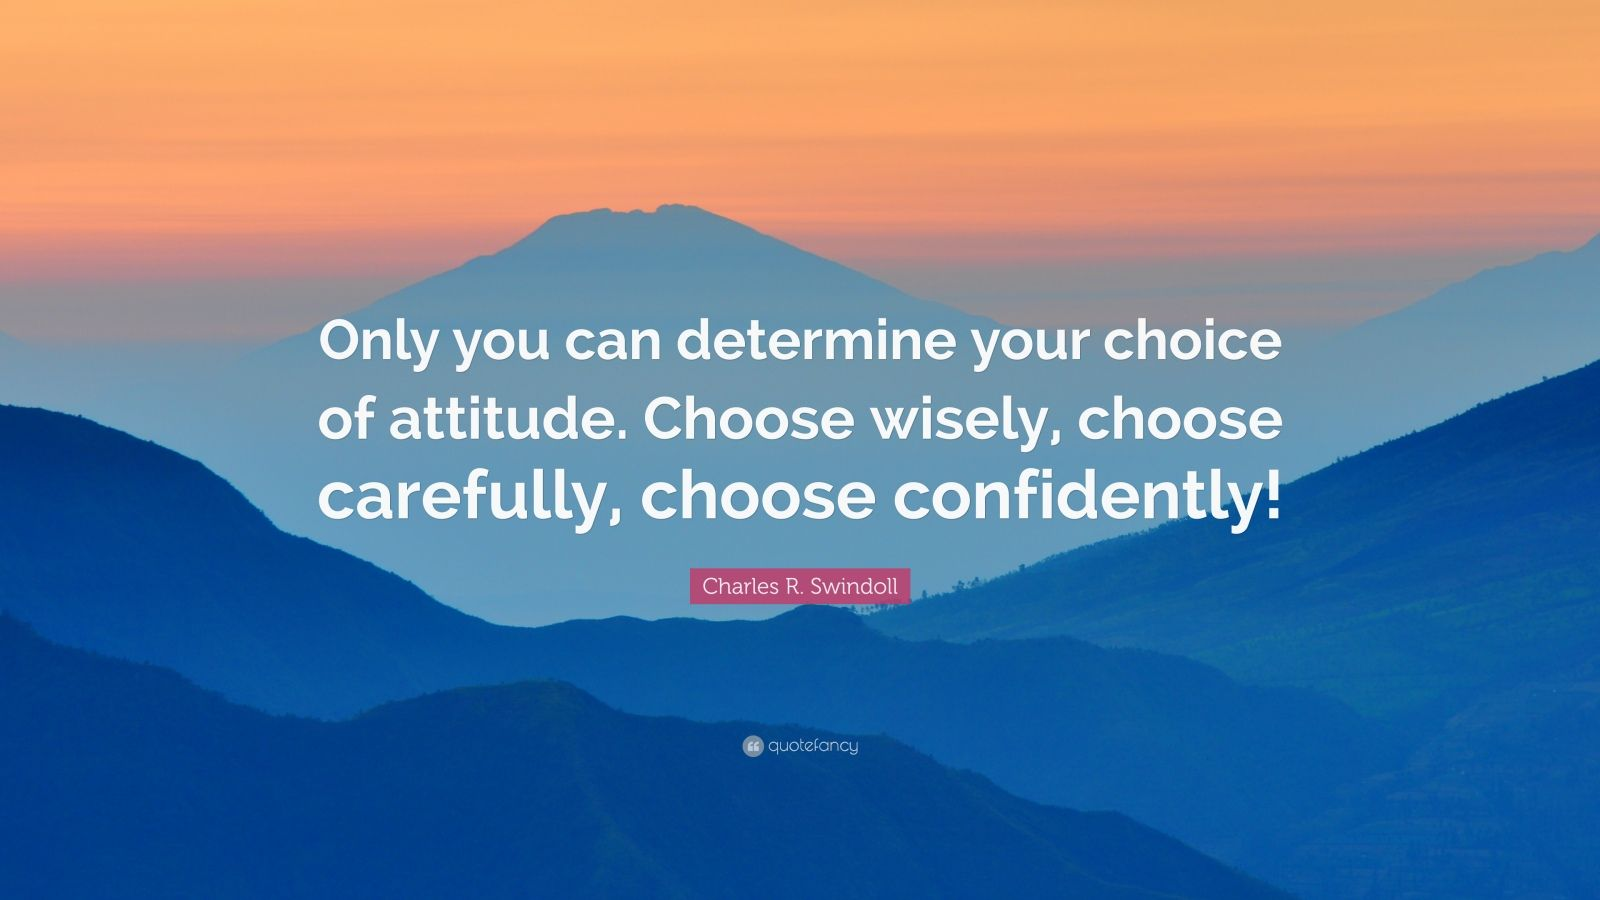 """Charles R. Swindoll Quote: """"Only you can determine your choice of attitude. Choose wisely, choose carefully, choose confidently!"""""""